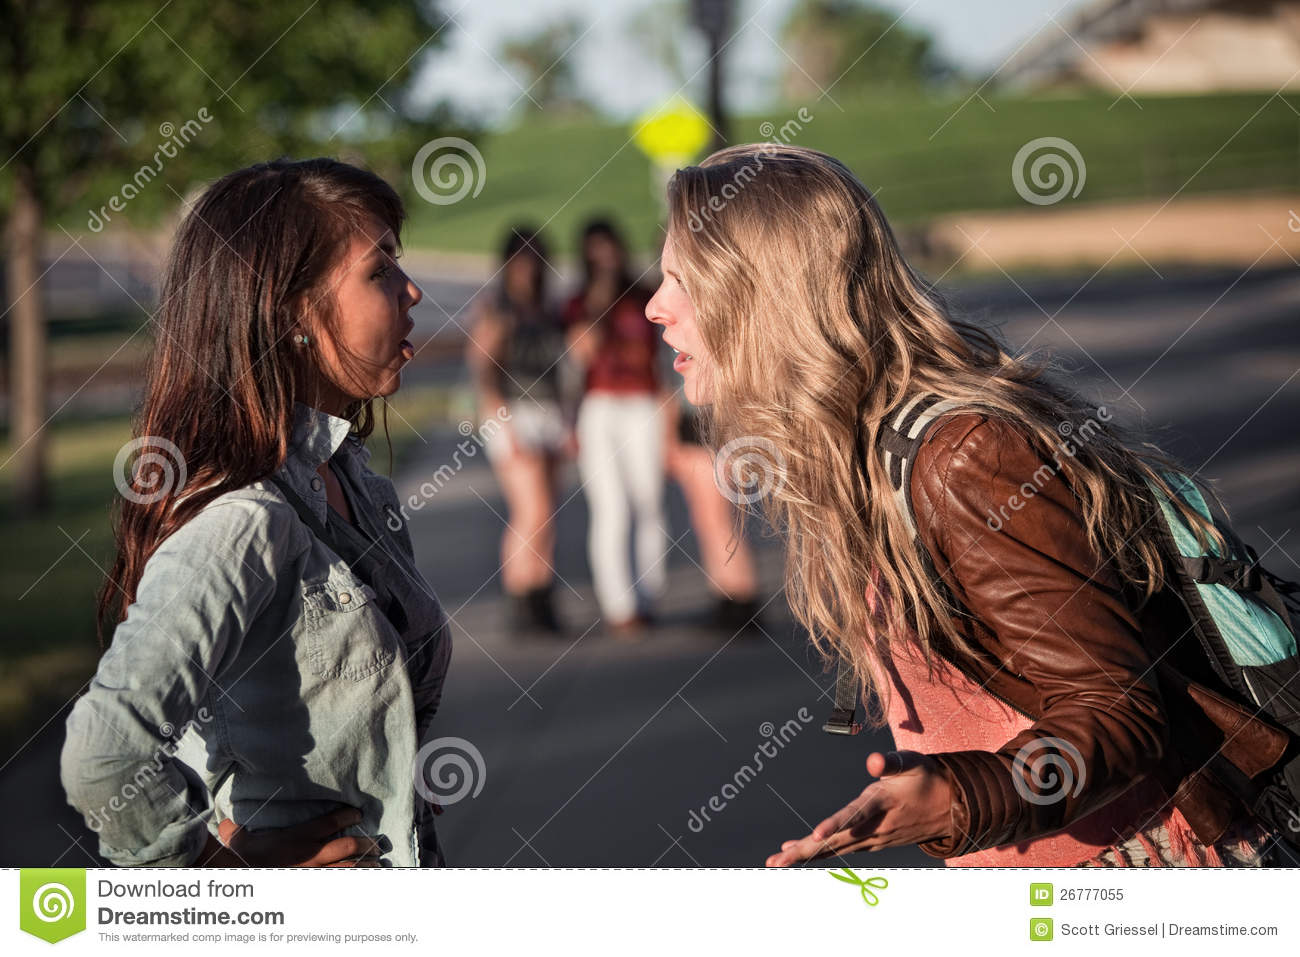 Two Girls Arguing Royalty Free Stock Photo - Image: 26777055